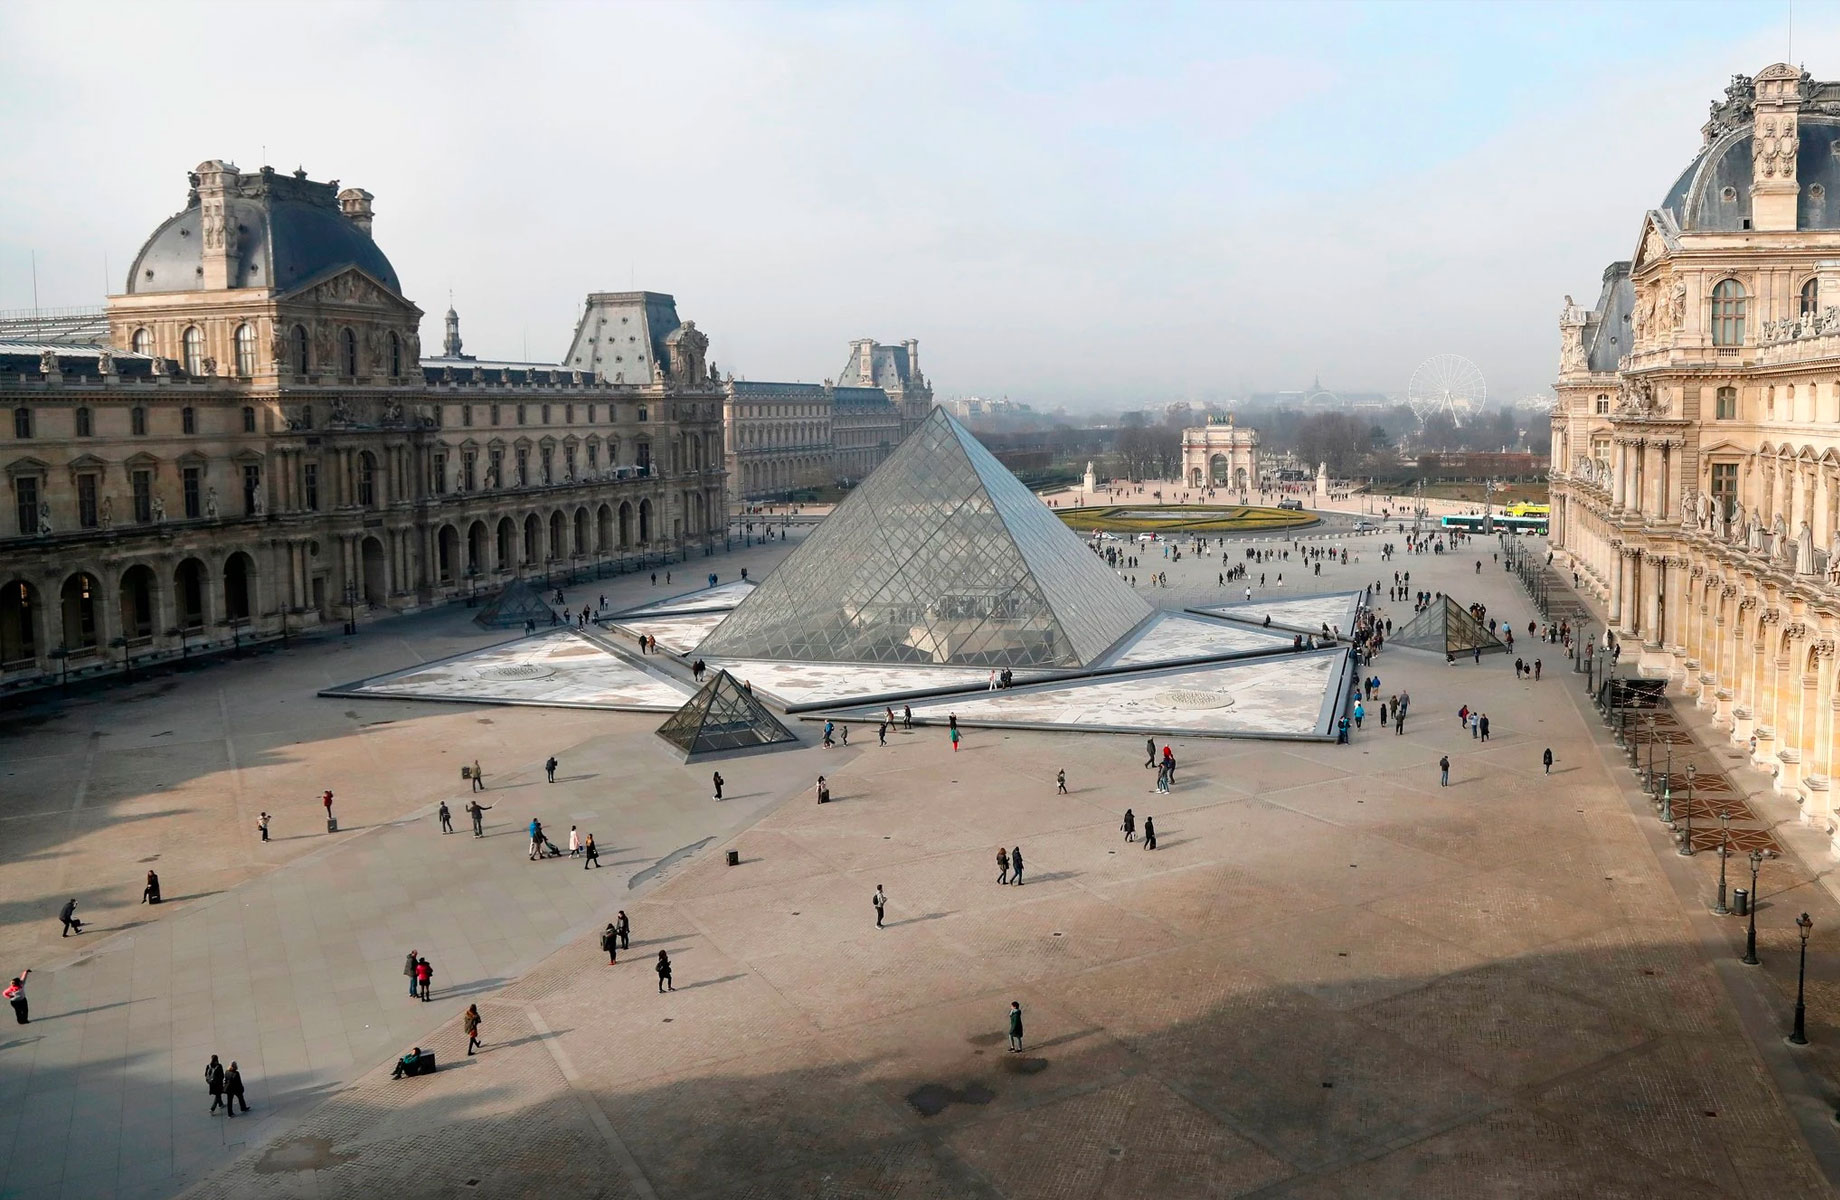 ▲ The glass pyramid that serves as an entry for the Louvre remains one of Pei's most famous commissions.